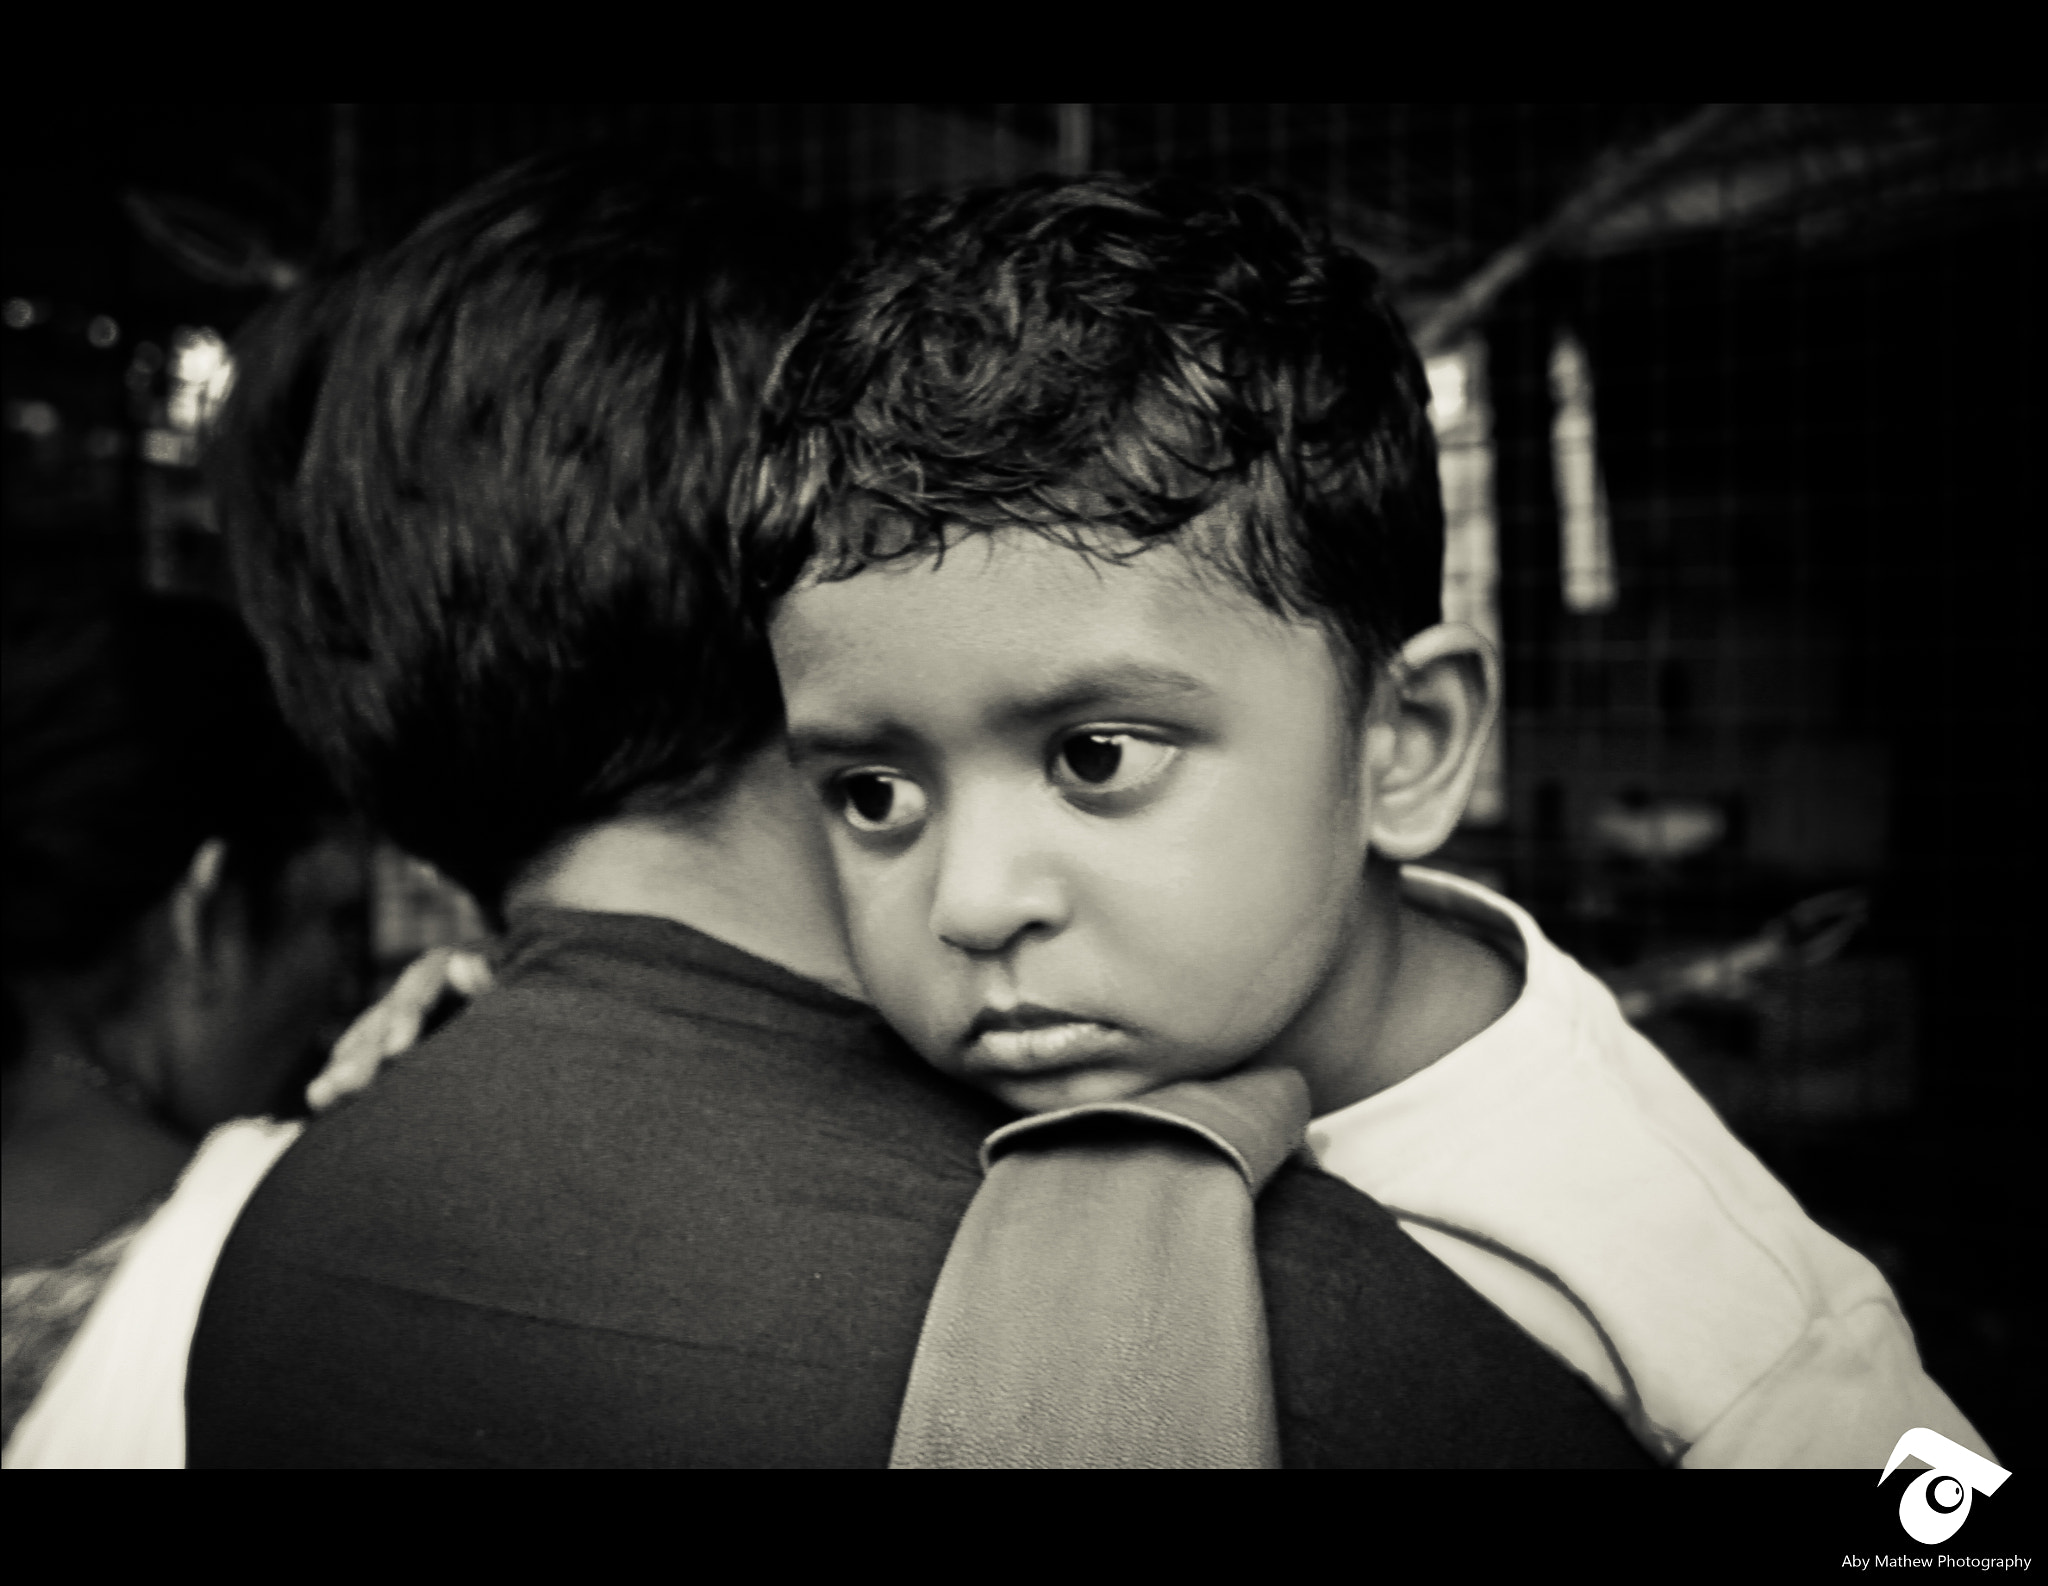 Photograph Mamma I need to go home by Aby Mathew on 500px